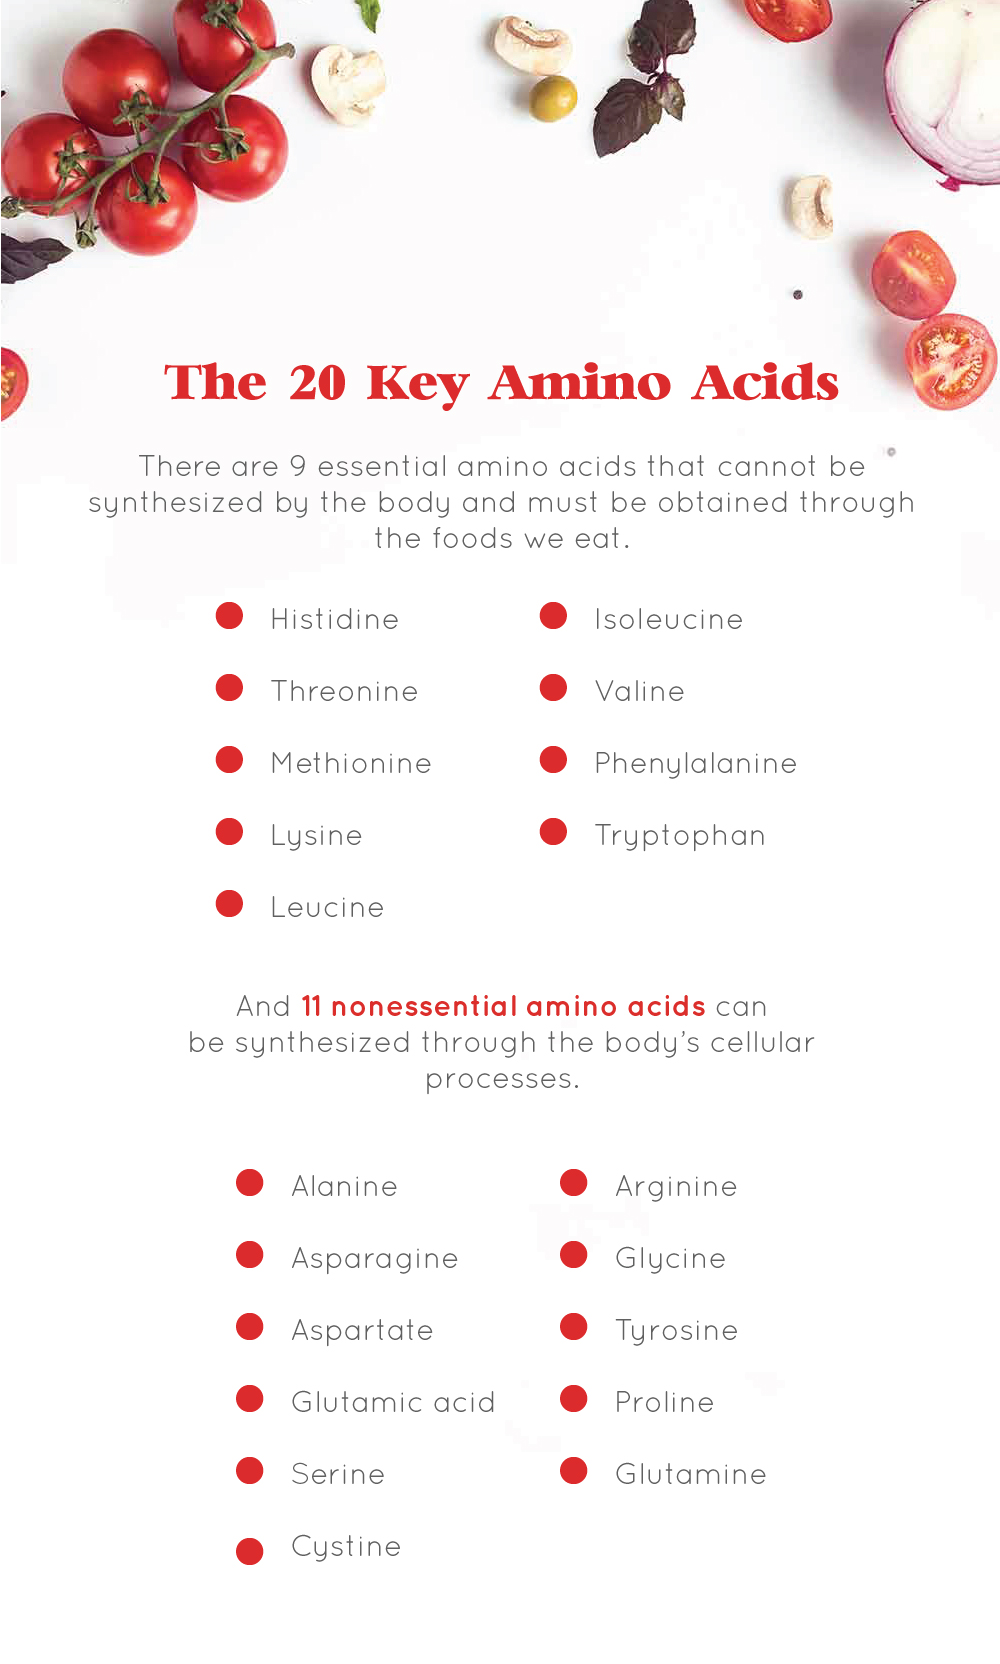 The 20 Key Amino Acids